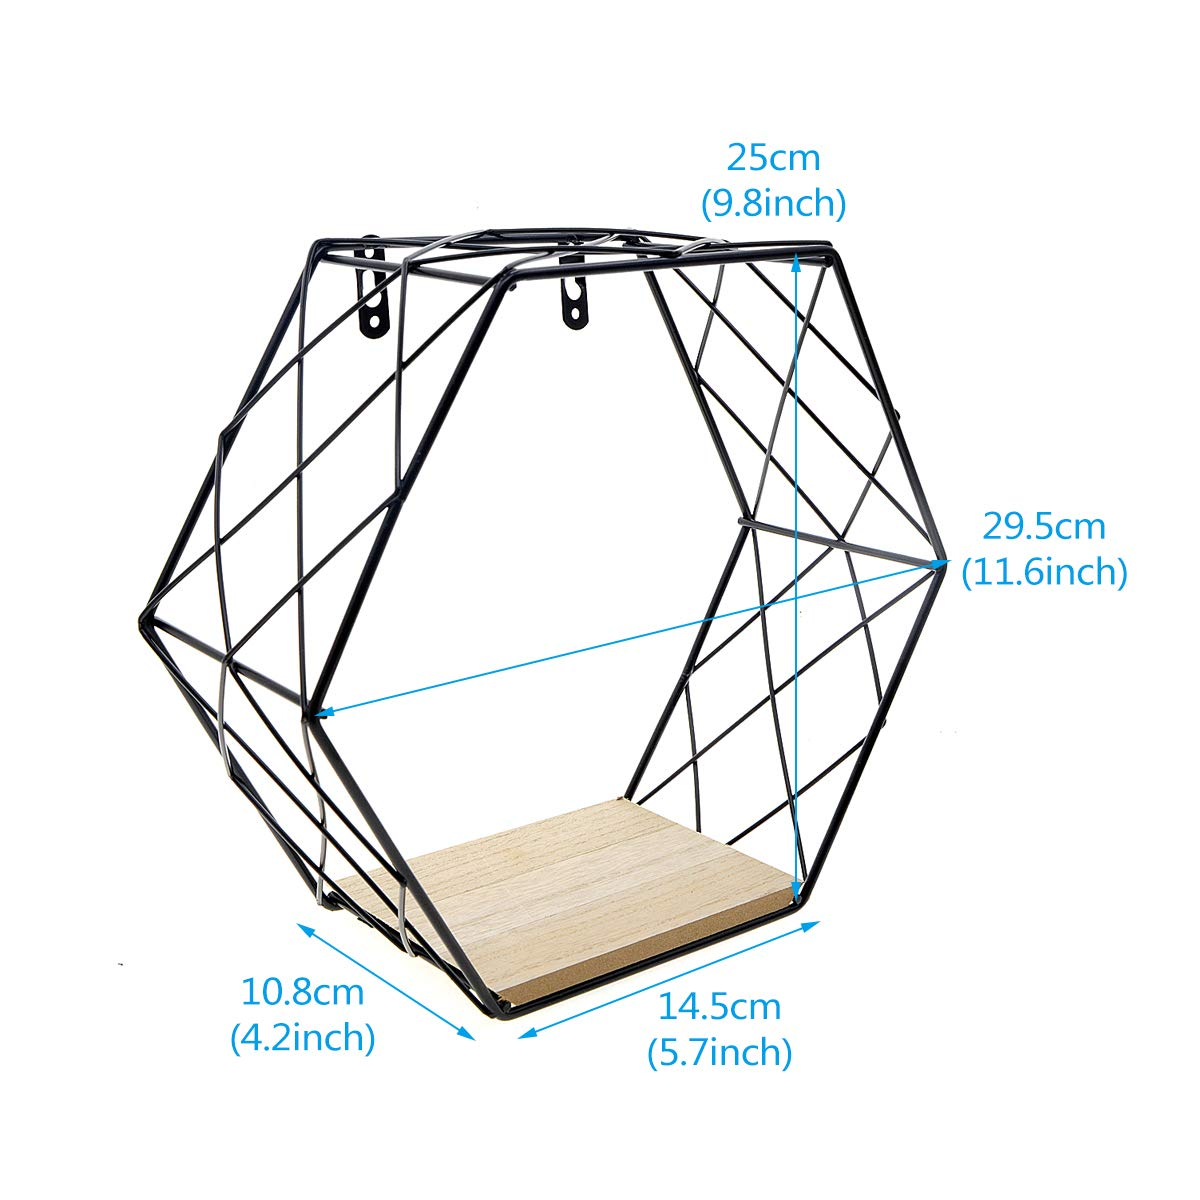 Amazon.com: Saim Floating Shelves Hexagon Wall Mounted Metal ... on how to wire a room, bedroom photography diagram, rewiring a living room diagram, how to diagram a room,